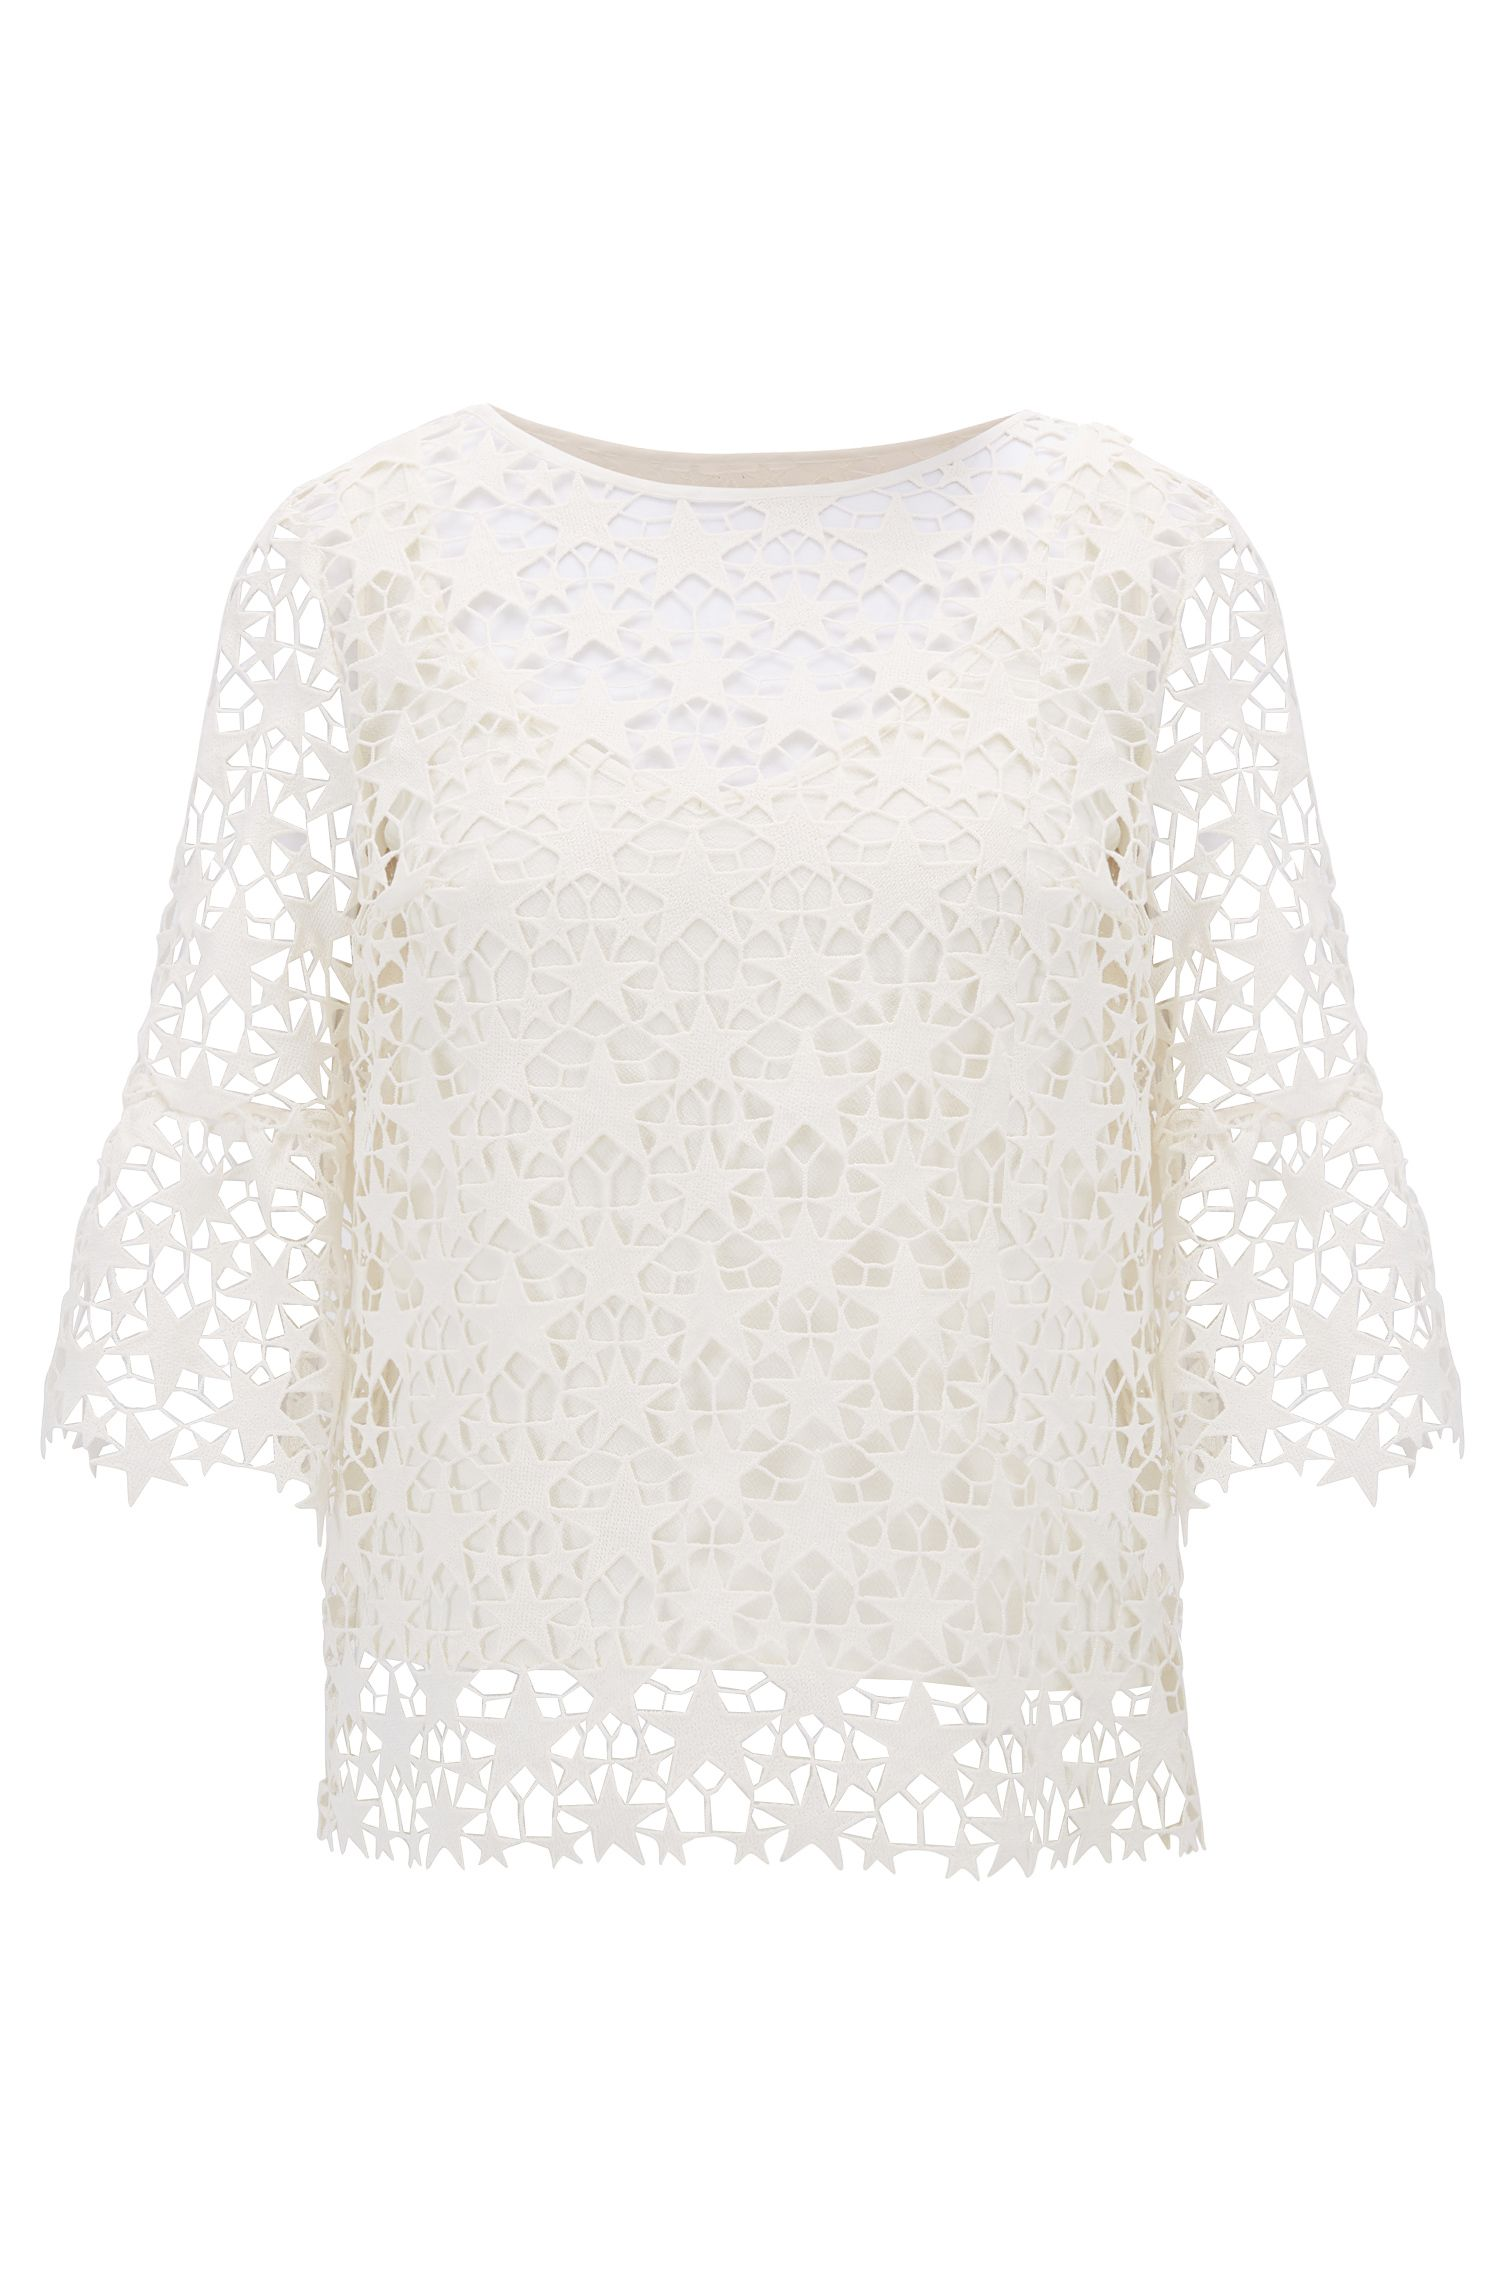 Star lace layered top with bell sleeves